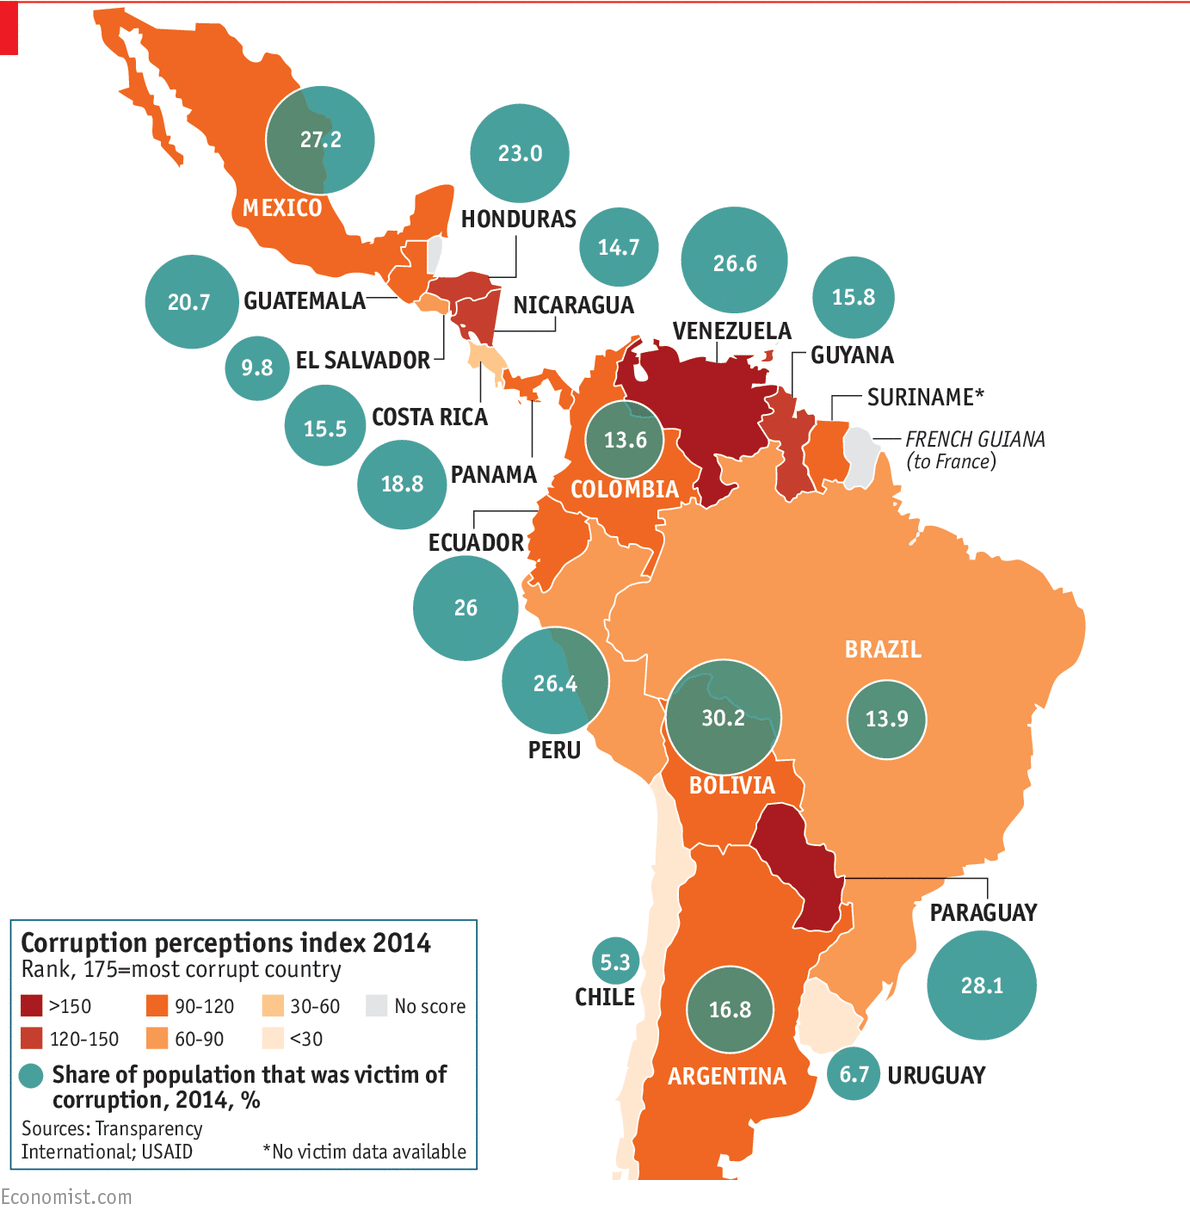 EmergingMarketSkeptic.com - Latin American Corruption Perceptions Index 2014